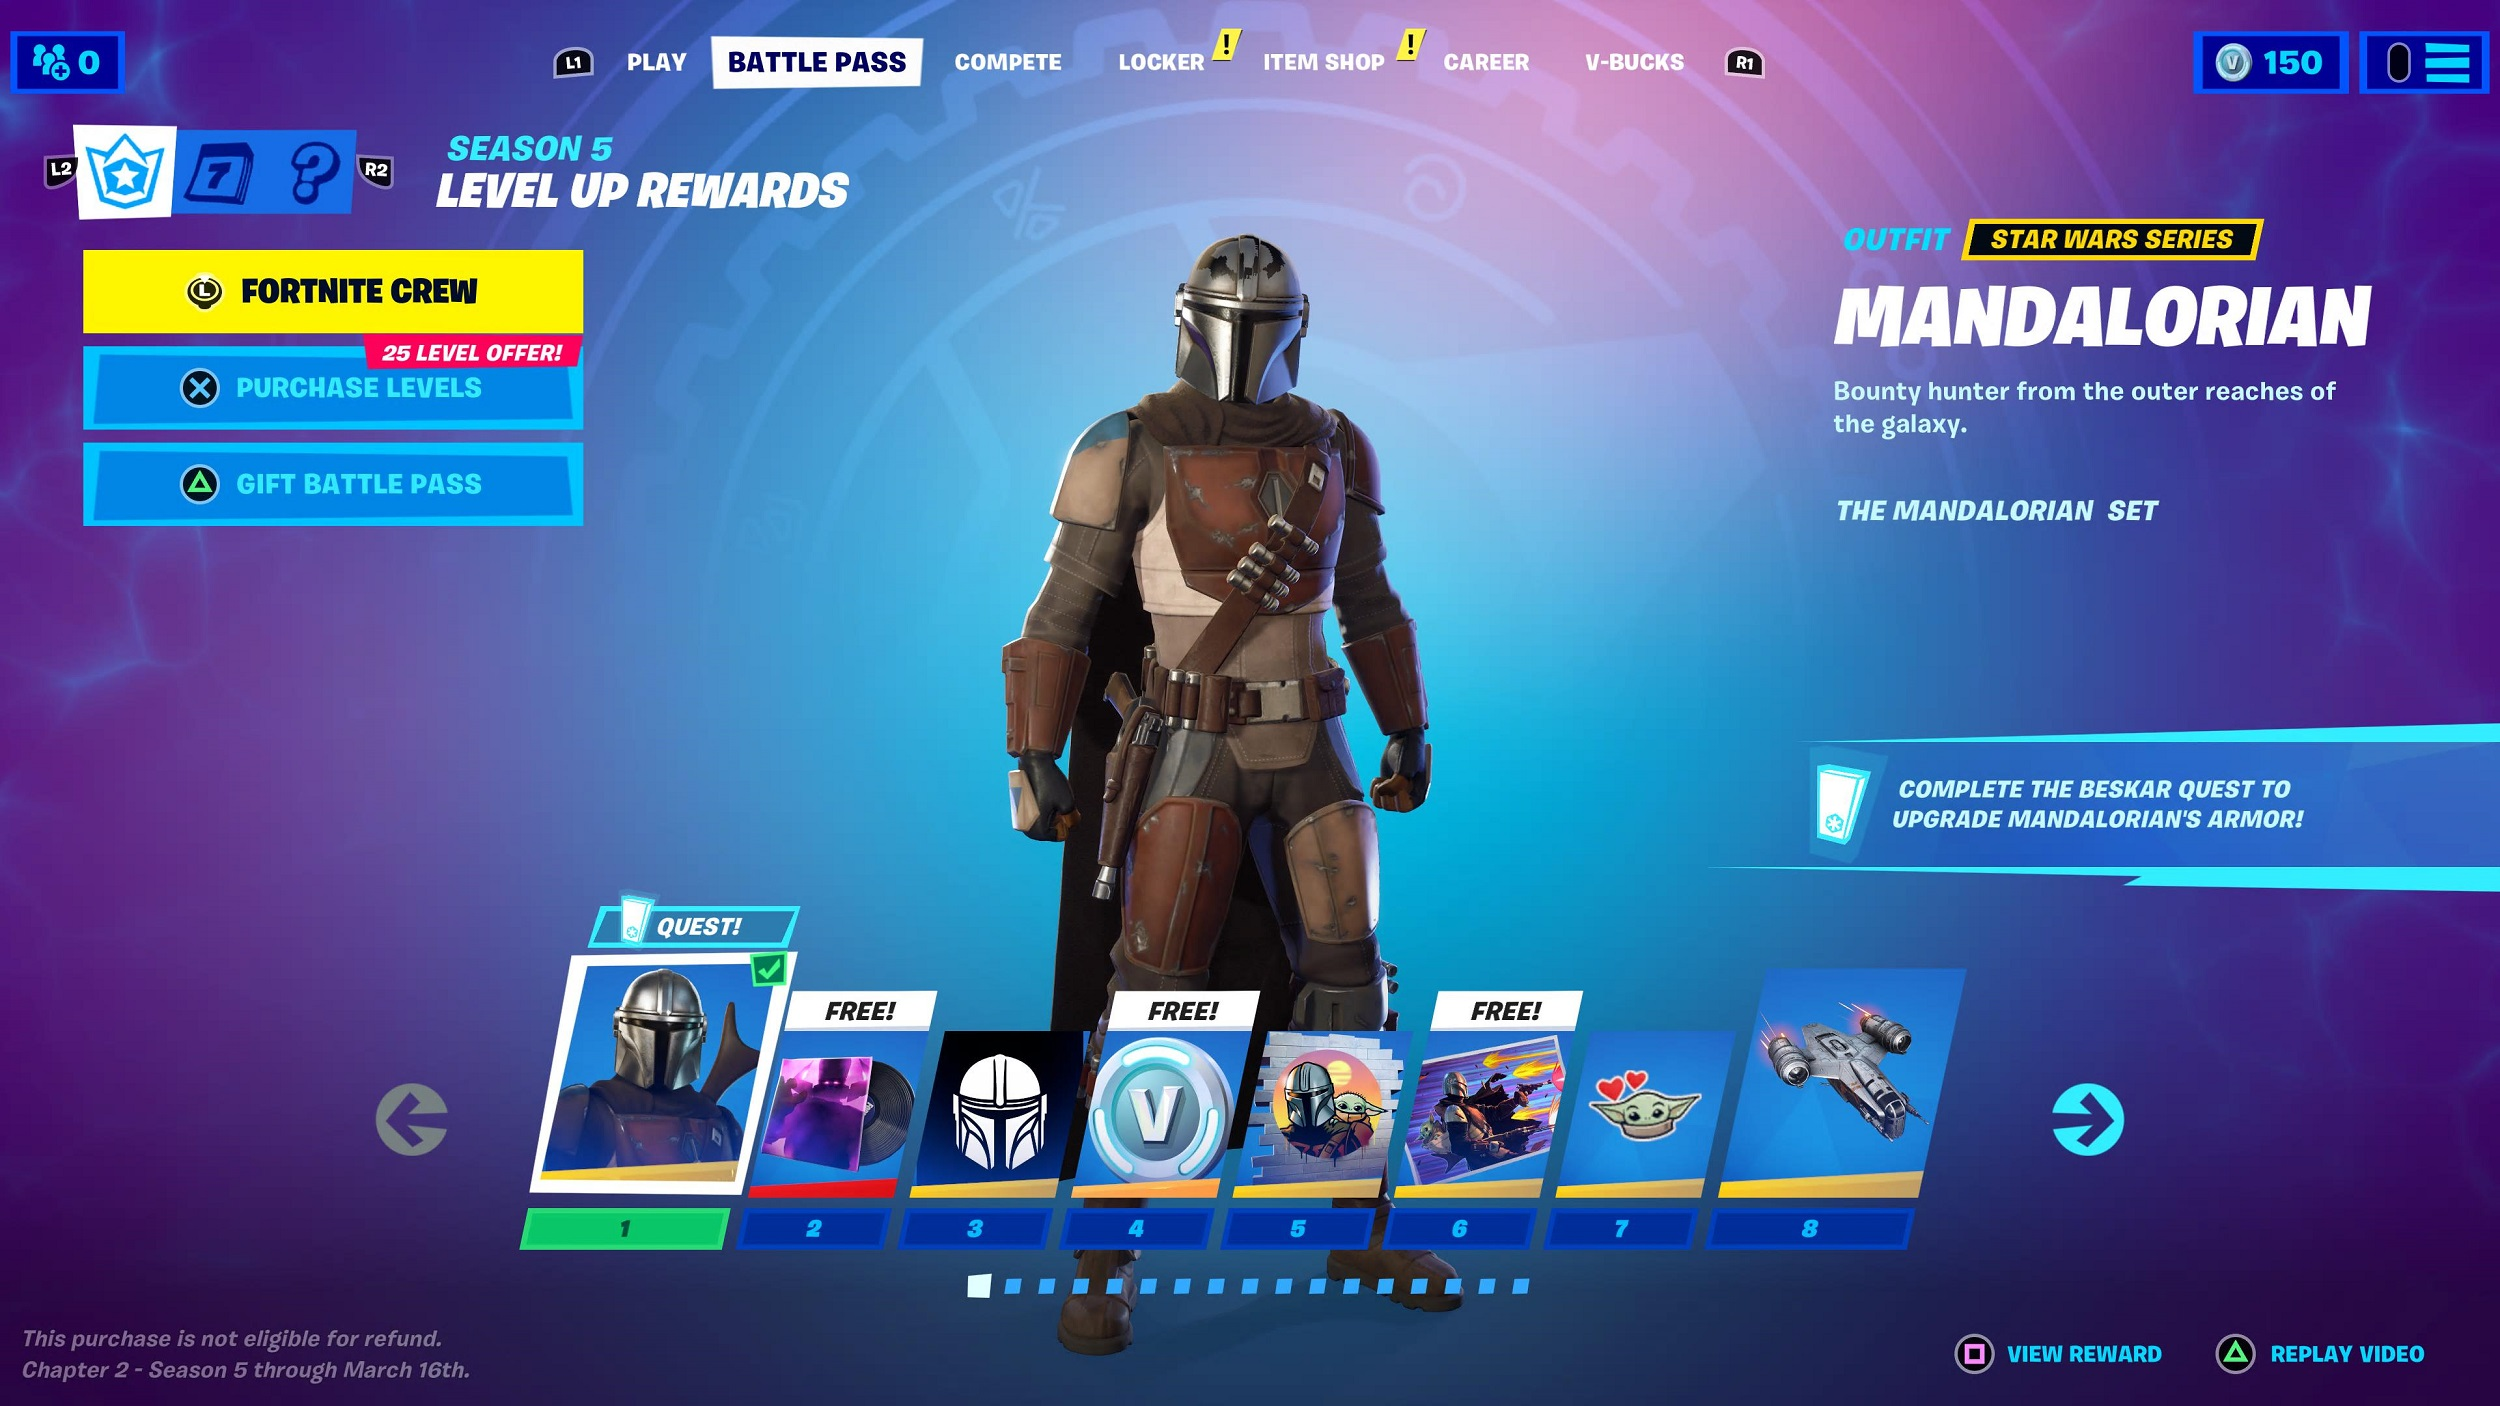 Fortnite Chapter 2 Season 5 Battle Pass Skins To Tier 100 Mandalorian Lexa And More However, players need to complete beskar challenges in order to unlock different mandalorian armor pieces. fortnite chapter 2 season 5 battle